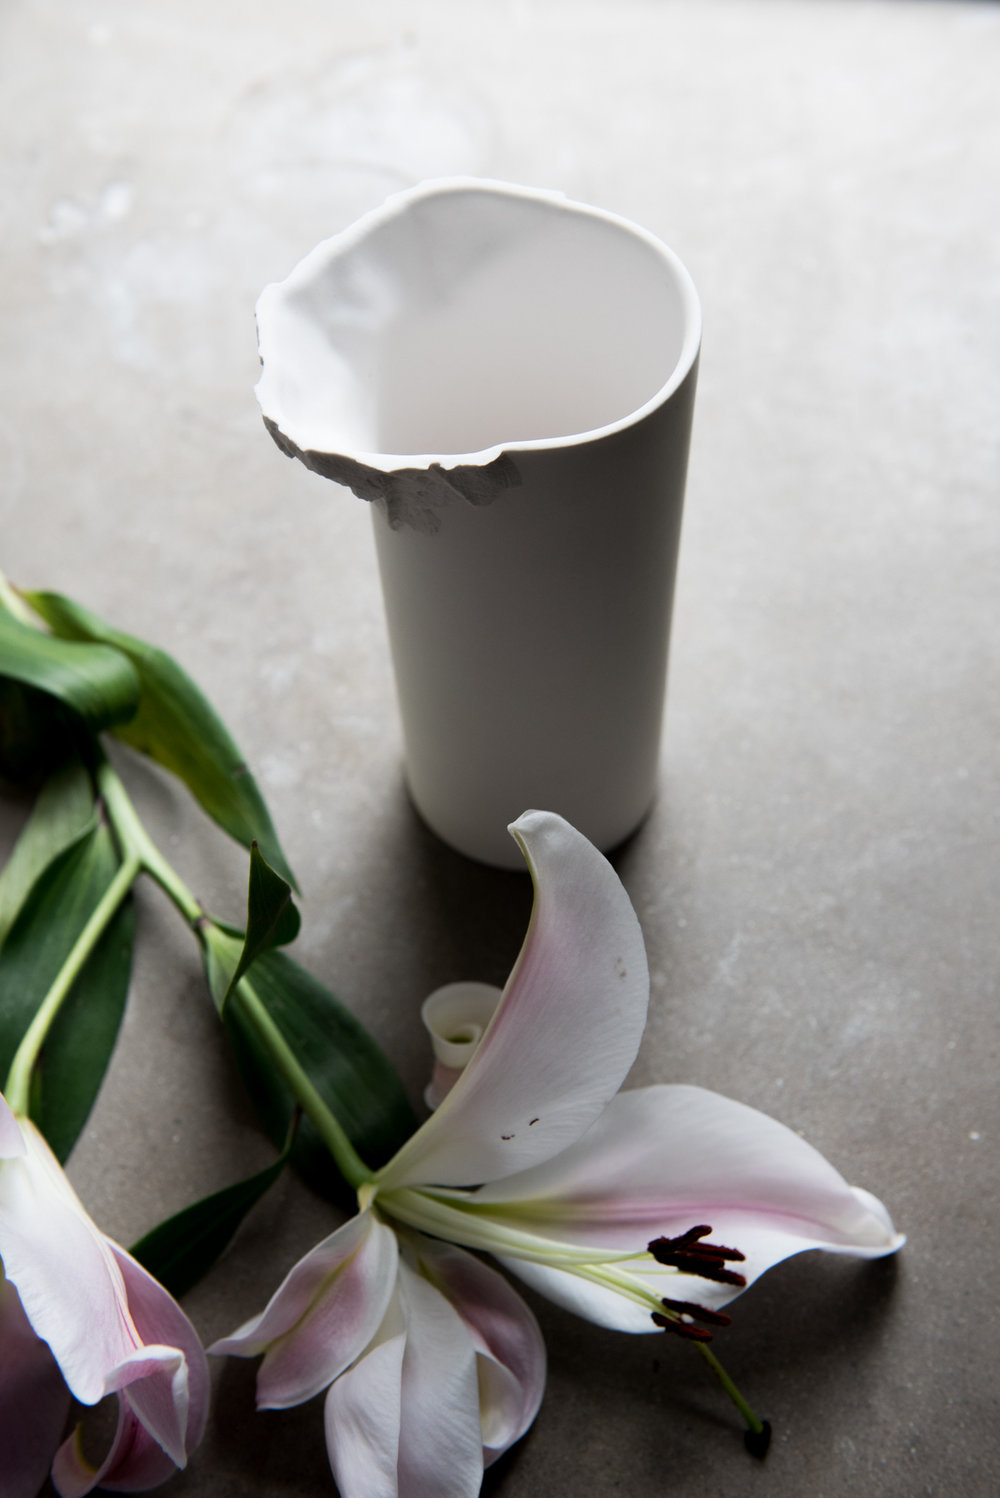 Porcelain Vase - Ian McIntyre. Originally designed in 2008 - redesigned in 2016 for M&R. Made on Bornholm